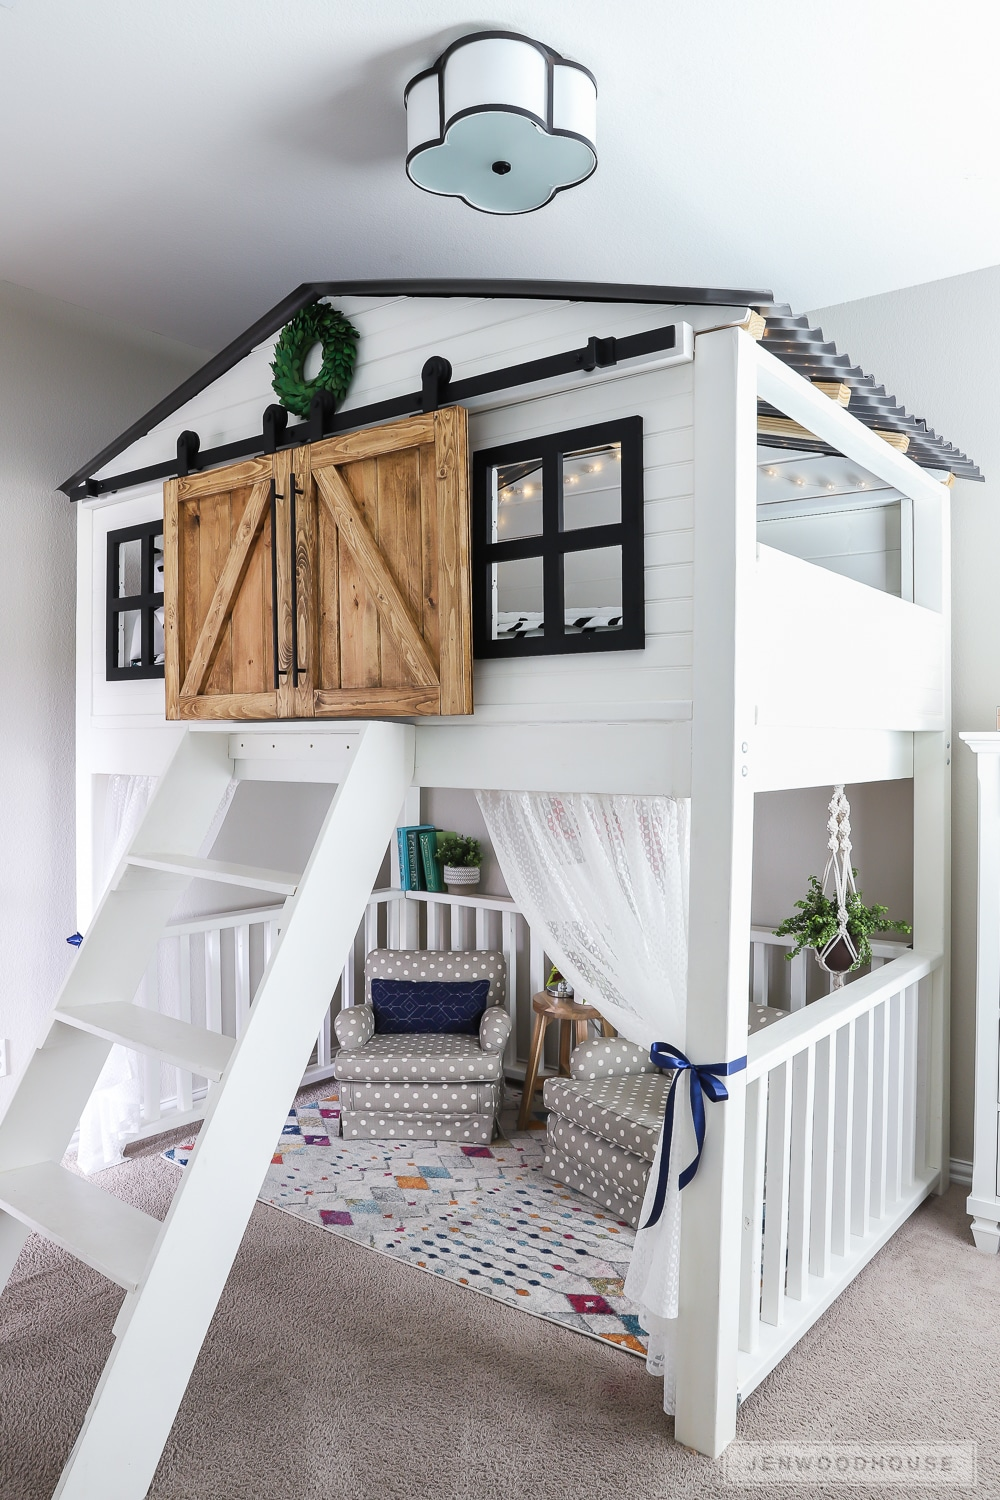 Adorable kids room with amazing loft bed!